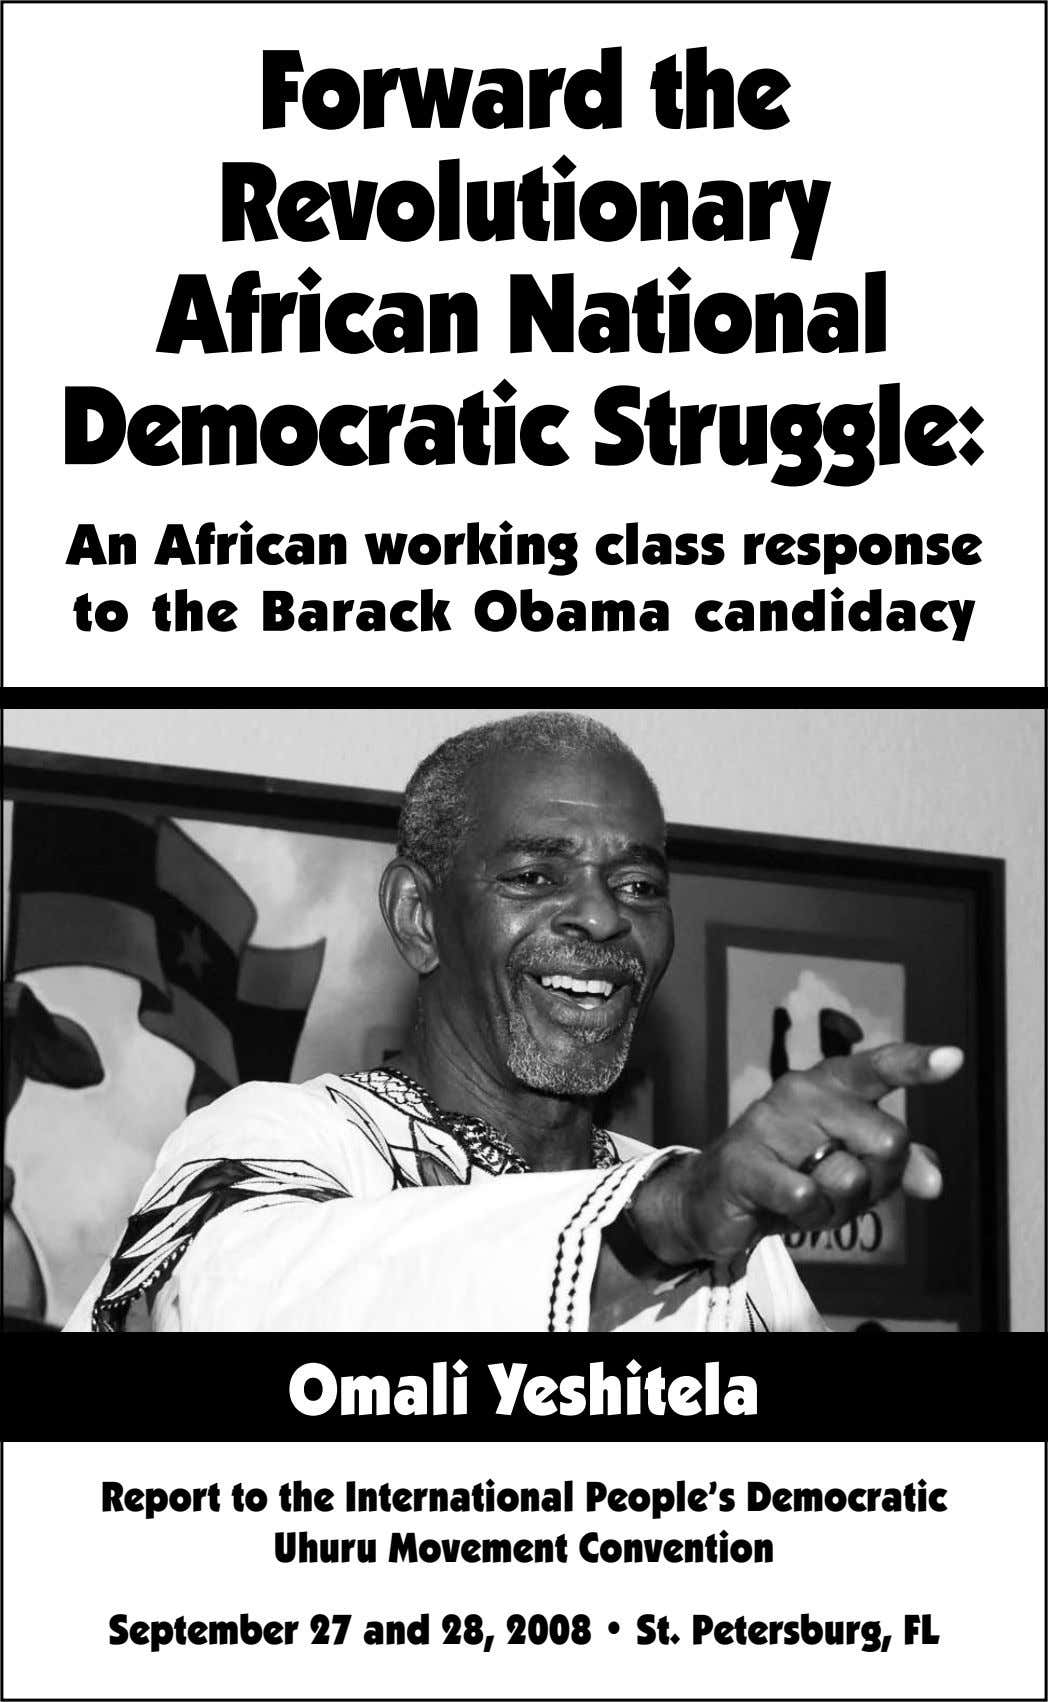 Forward the Revolutionary African National Democratic Struggle: An African working class response to the Barack